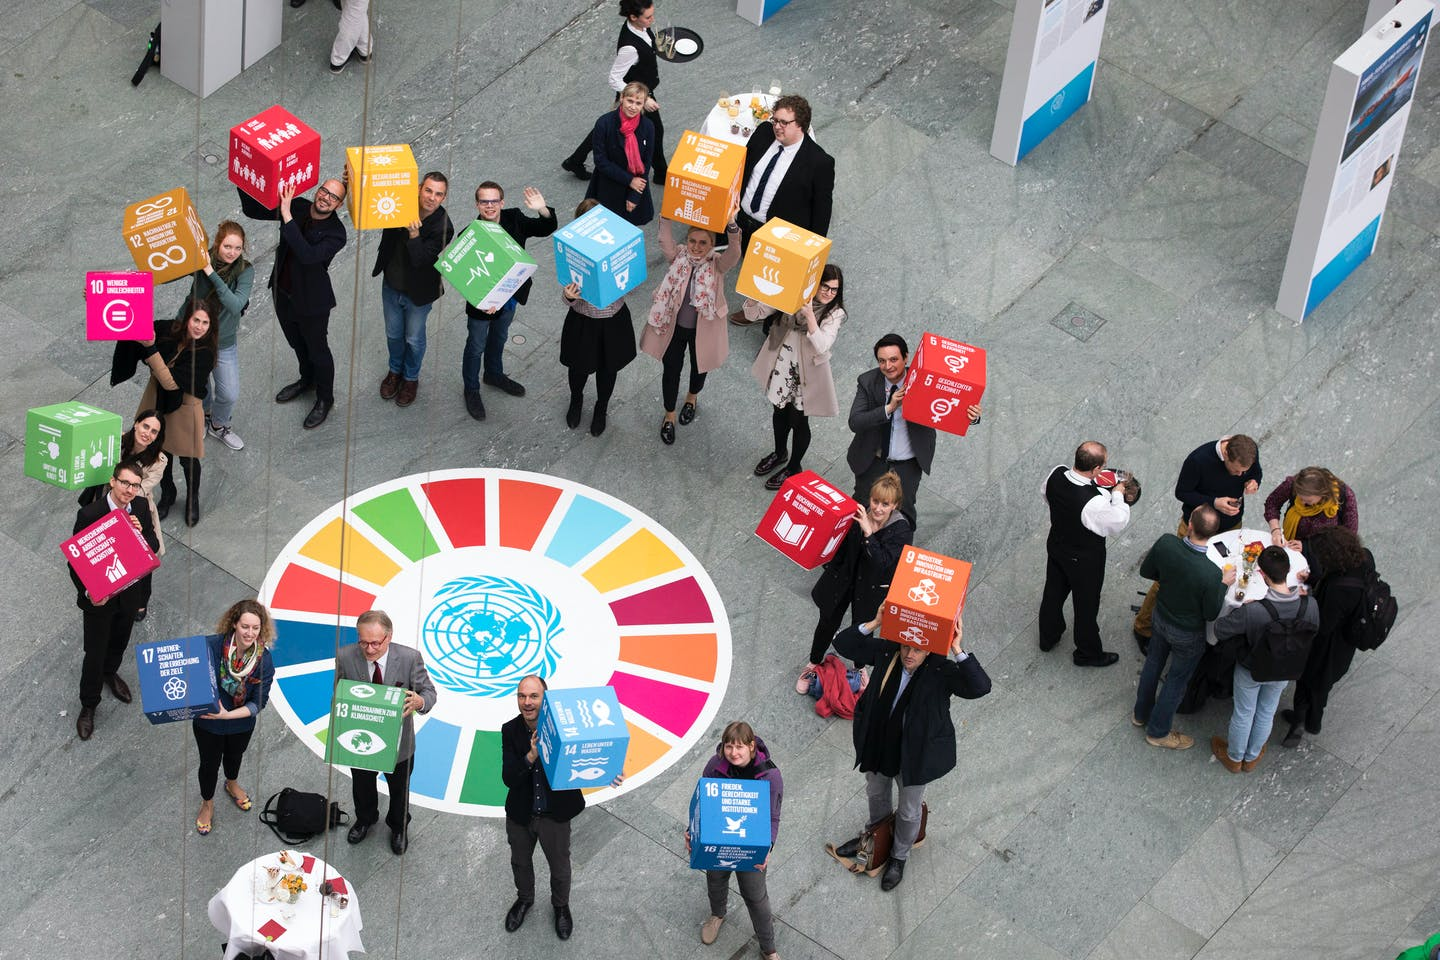 SDGs exhibition in Berlin, Germany